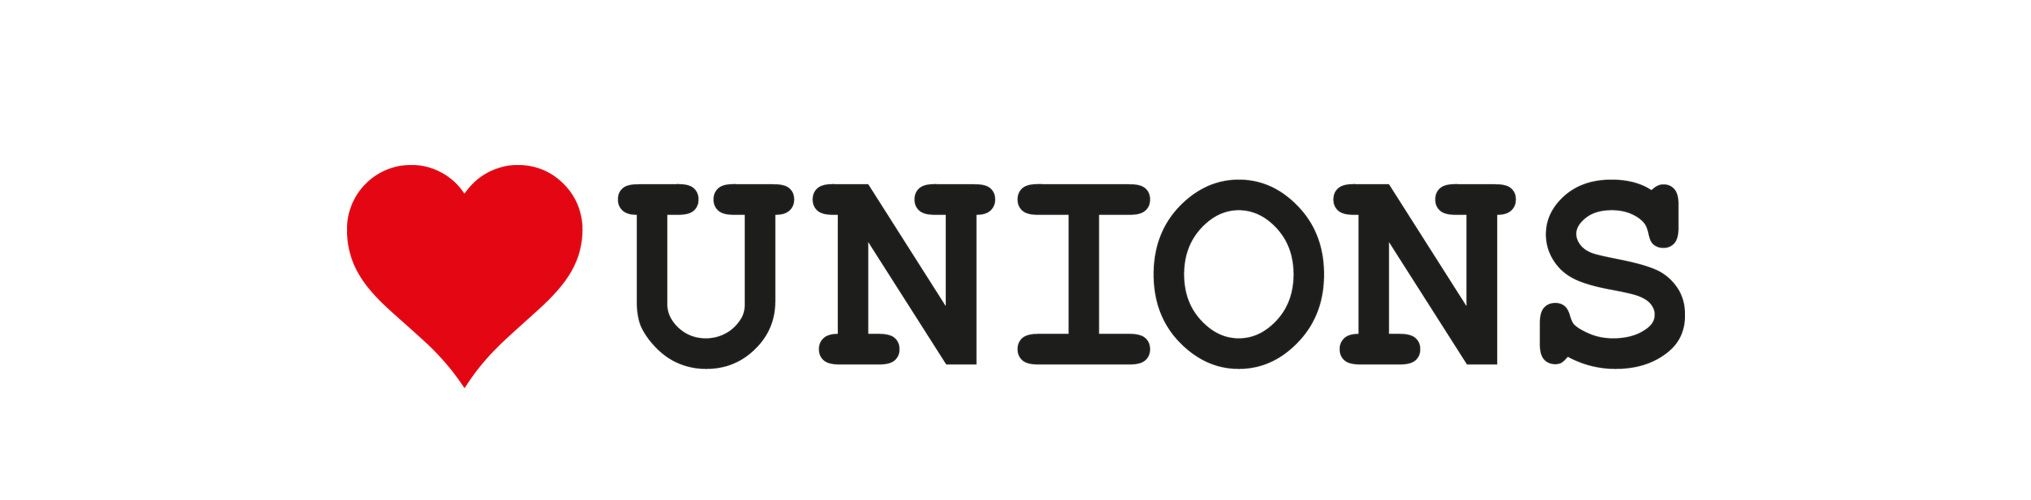 HeartUnions logo